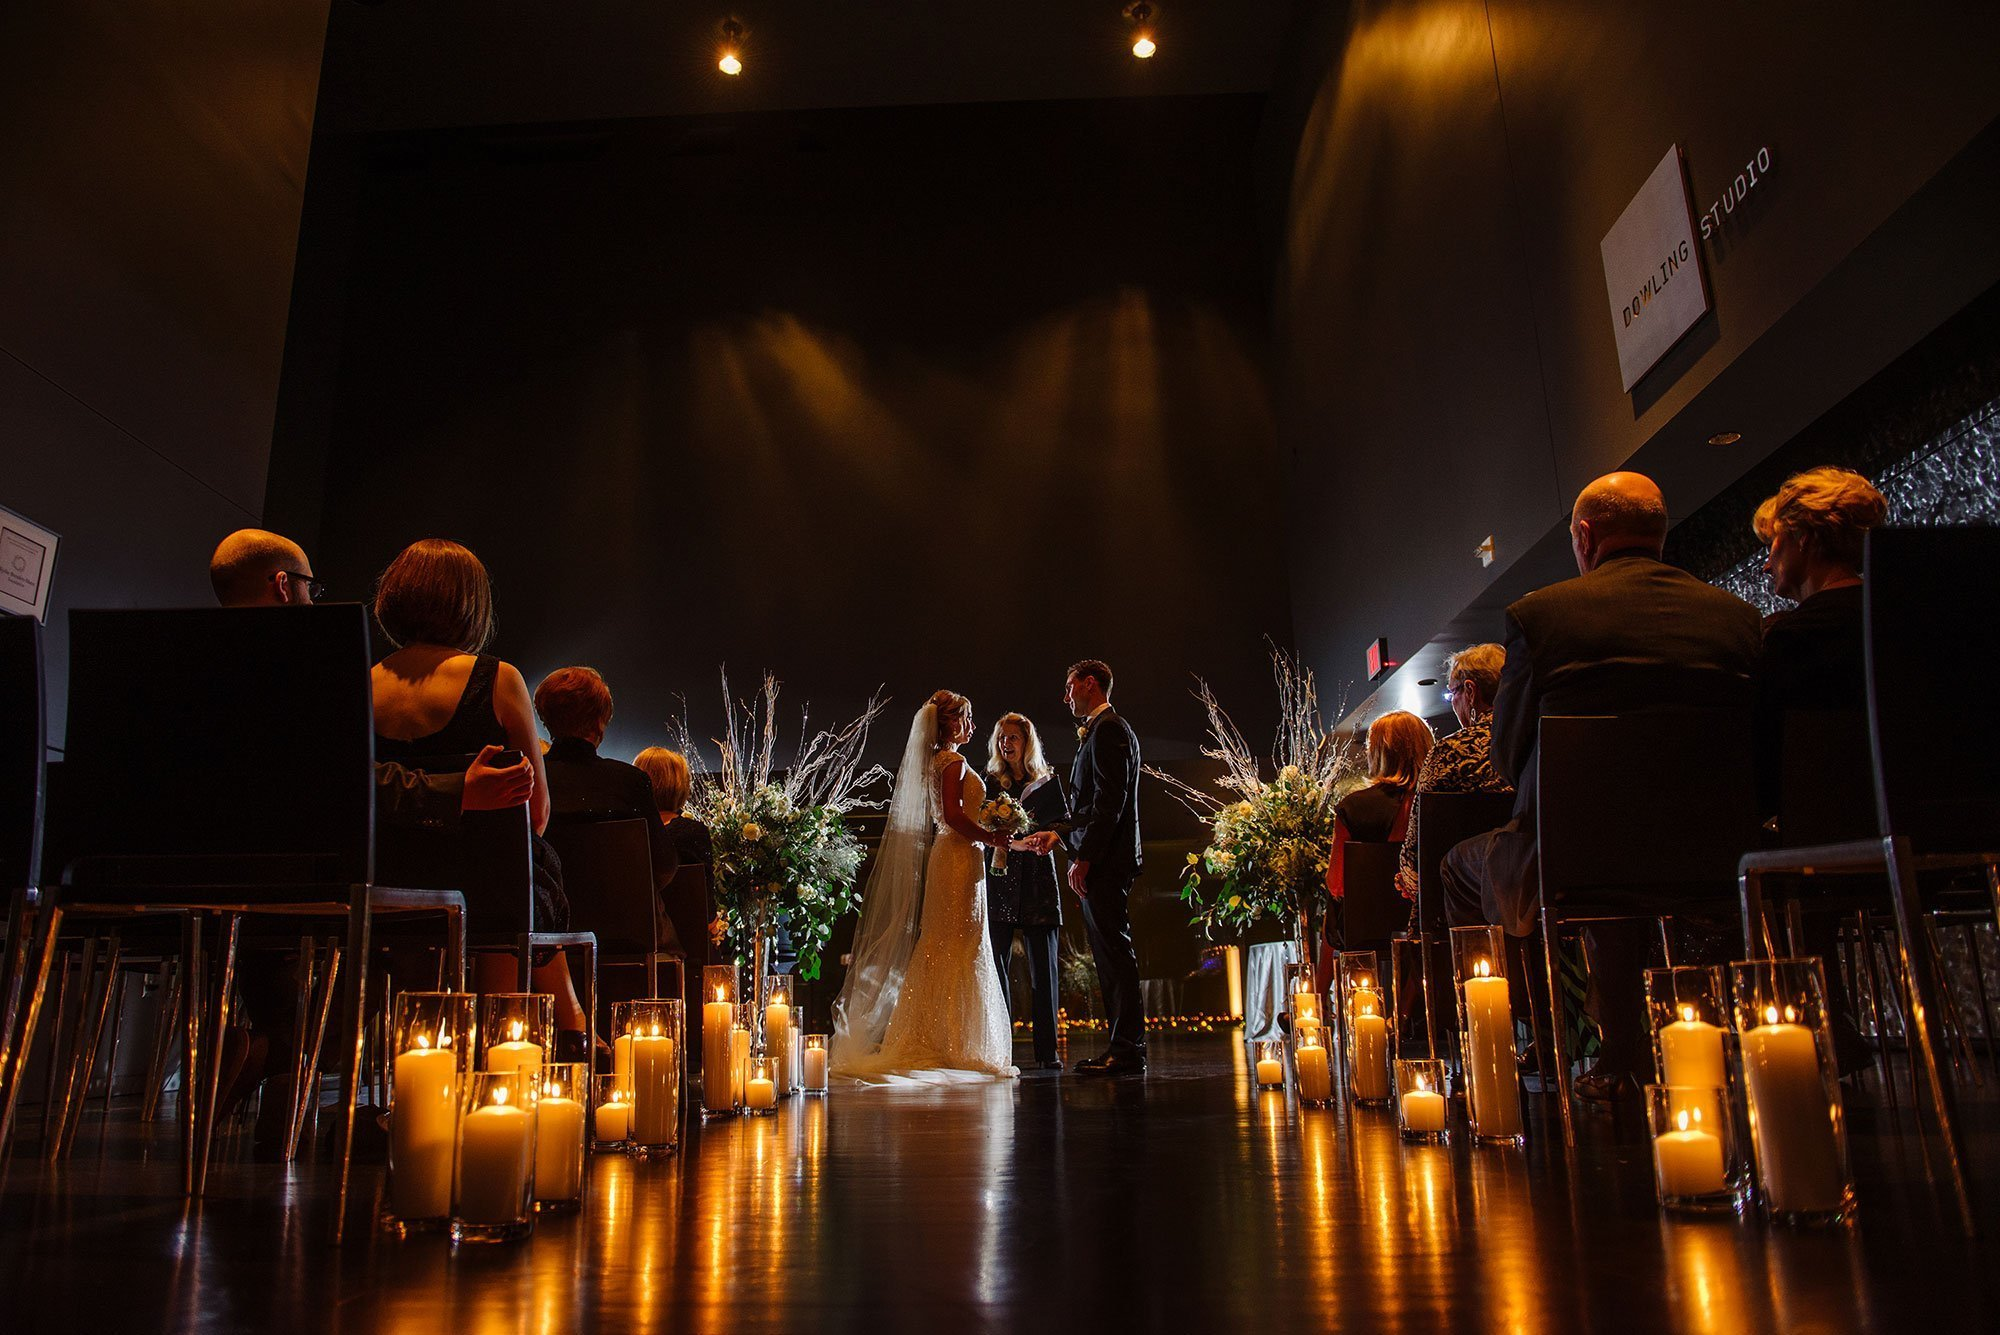 Guthrie theater candlelit wedding ceremony Minneapolis mn